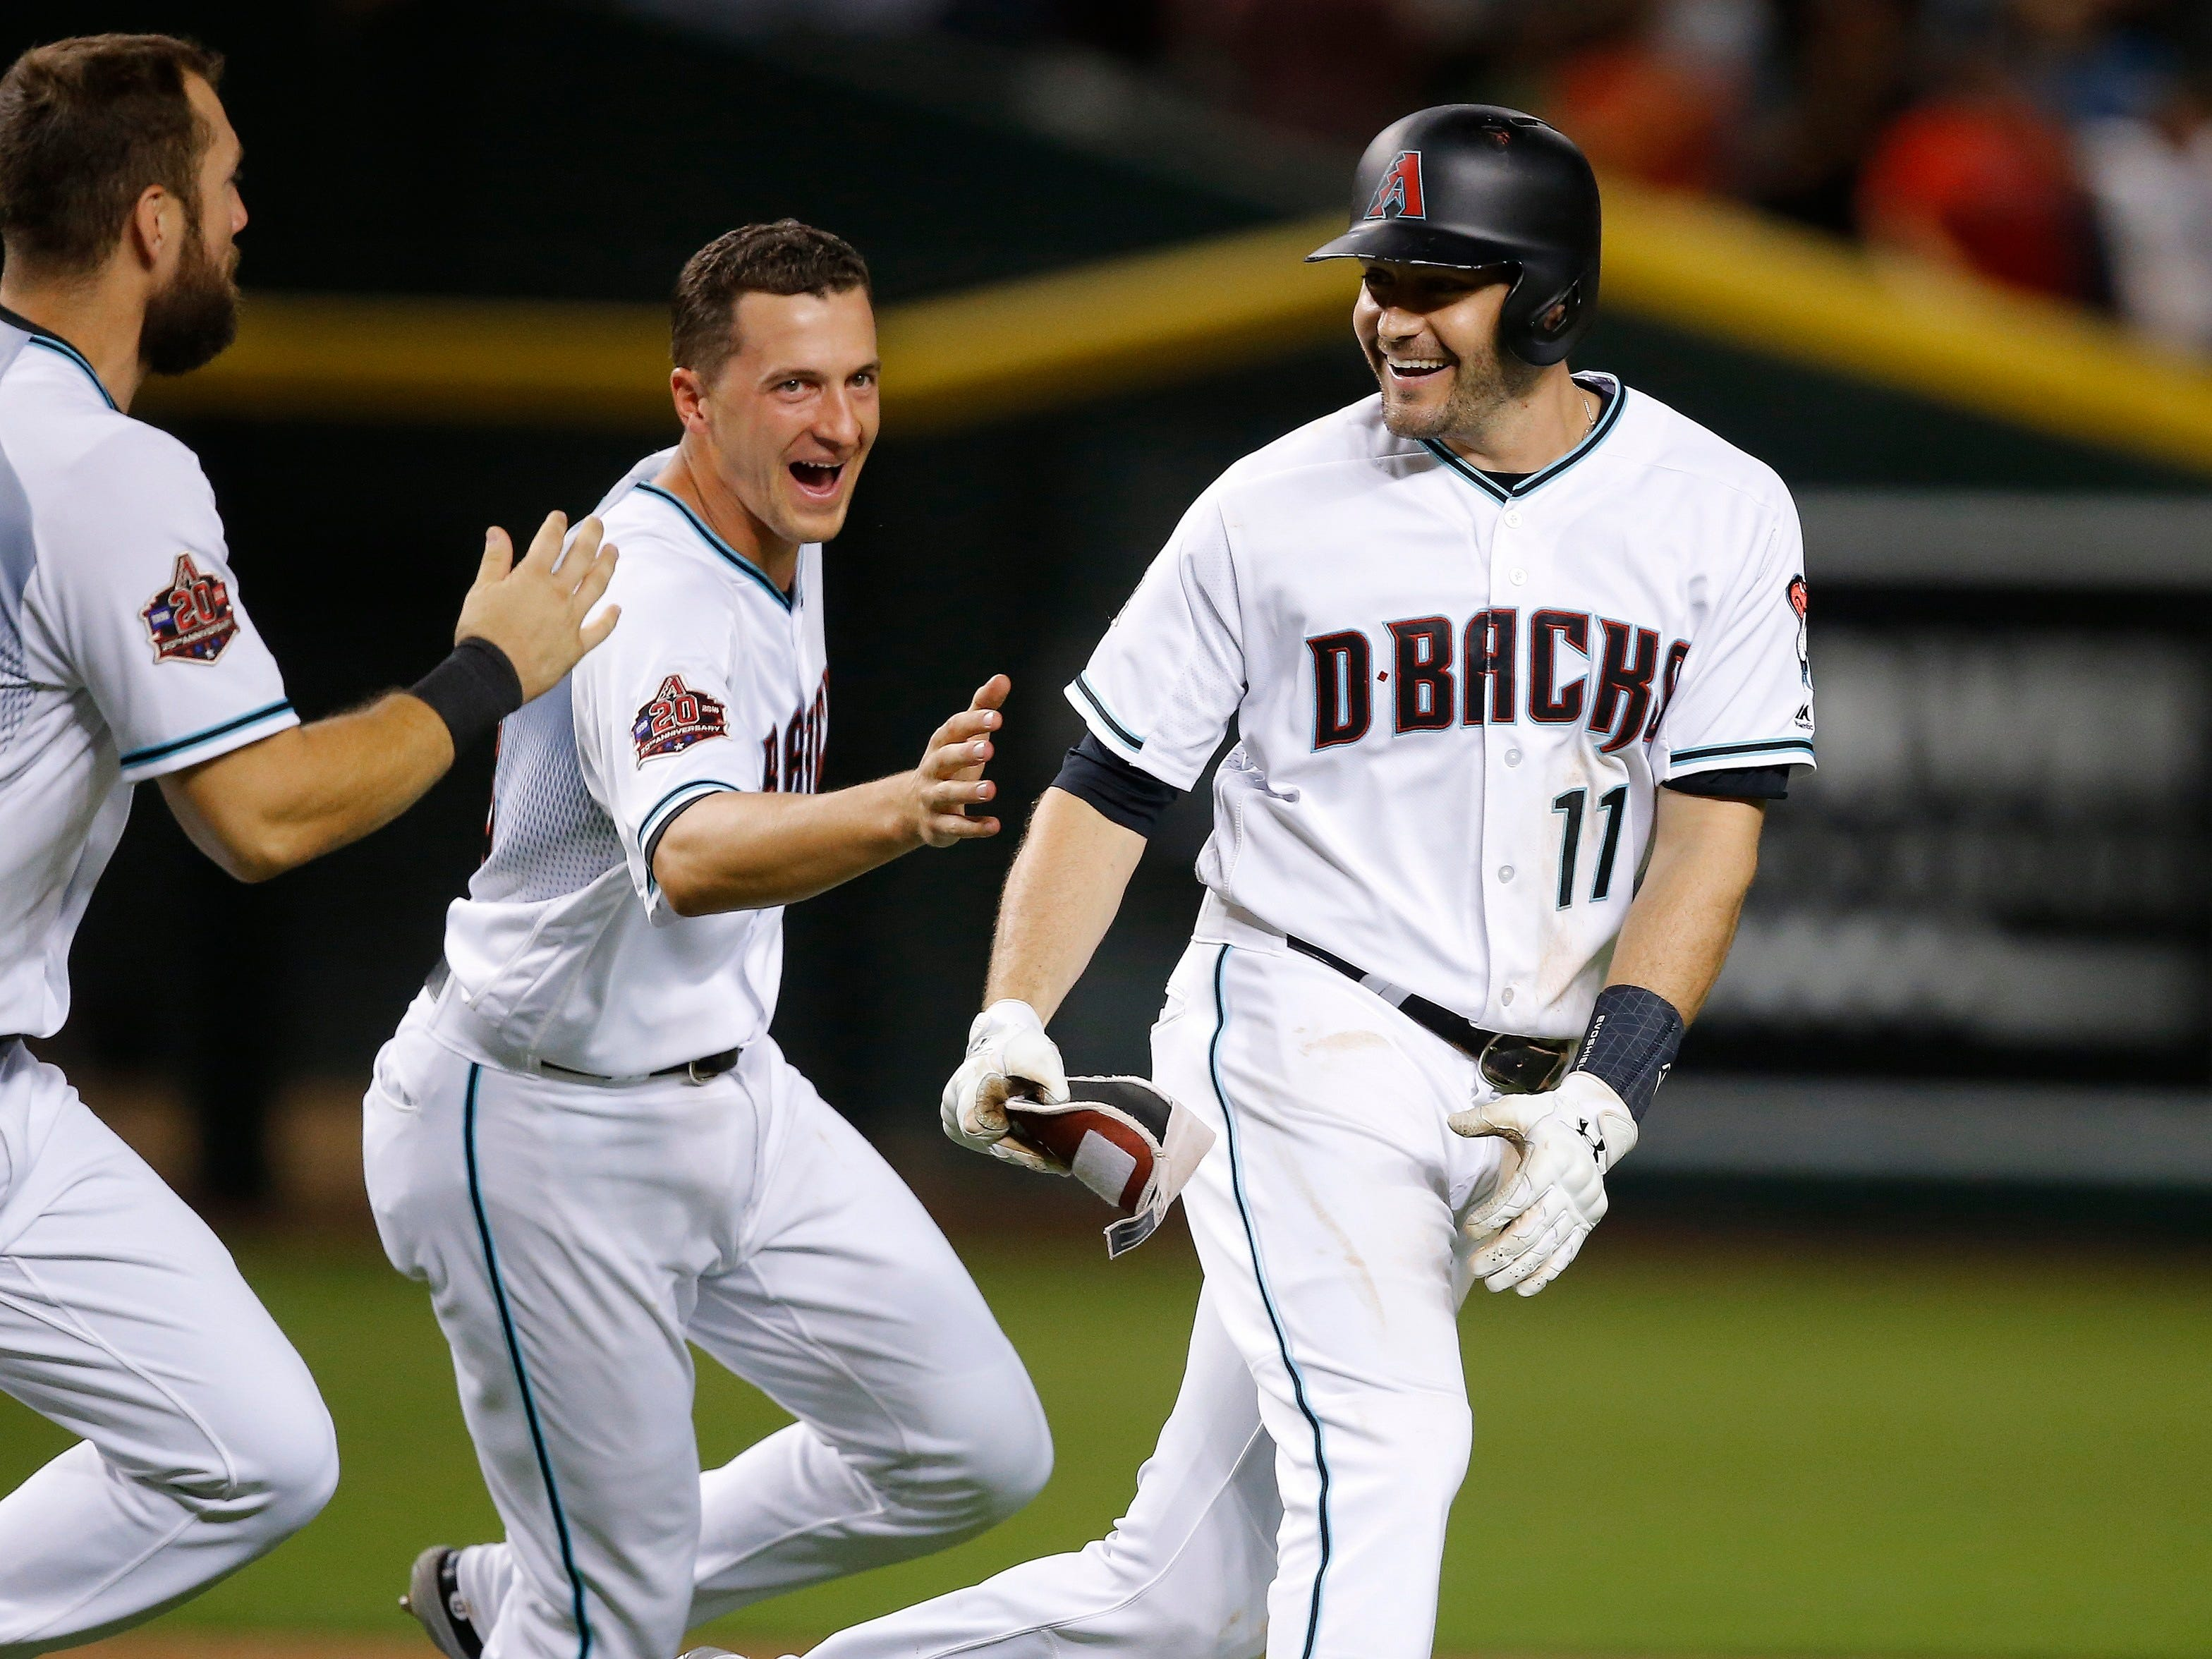 Arizona Diamondbacks' A.J. Pollock (11) celebrates a win against the Los Angeles Angels with Steven Souza Jr., left, and Nick Ahmed, middle, after a baseball game, Tuesday, Aug. 21, 2018, in Phoenix. The Diamondbacks defeated the Angels 5-4.